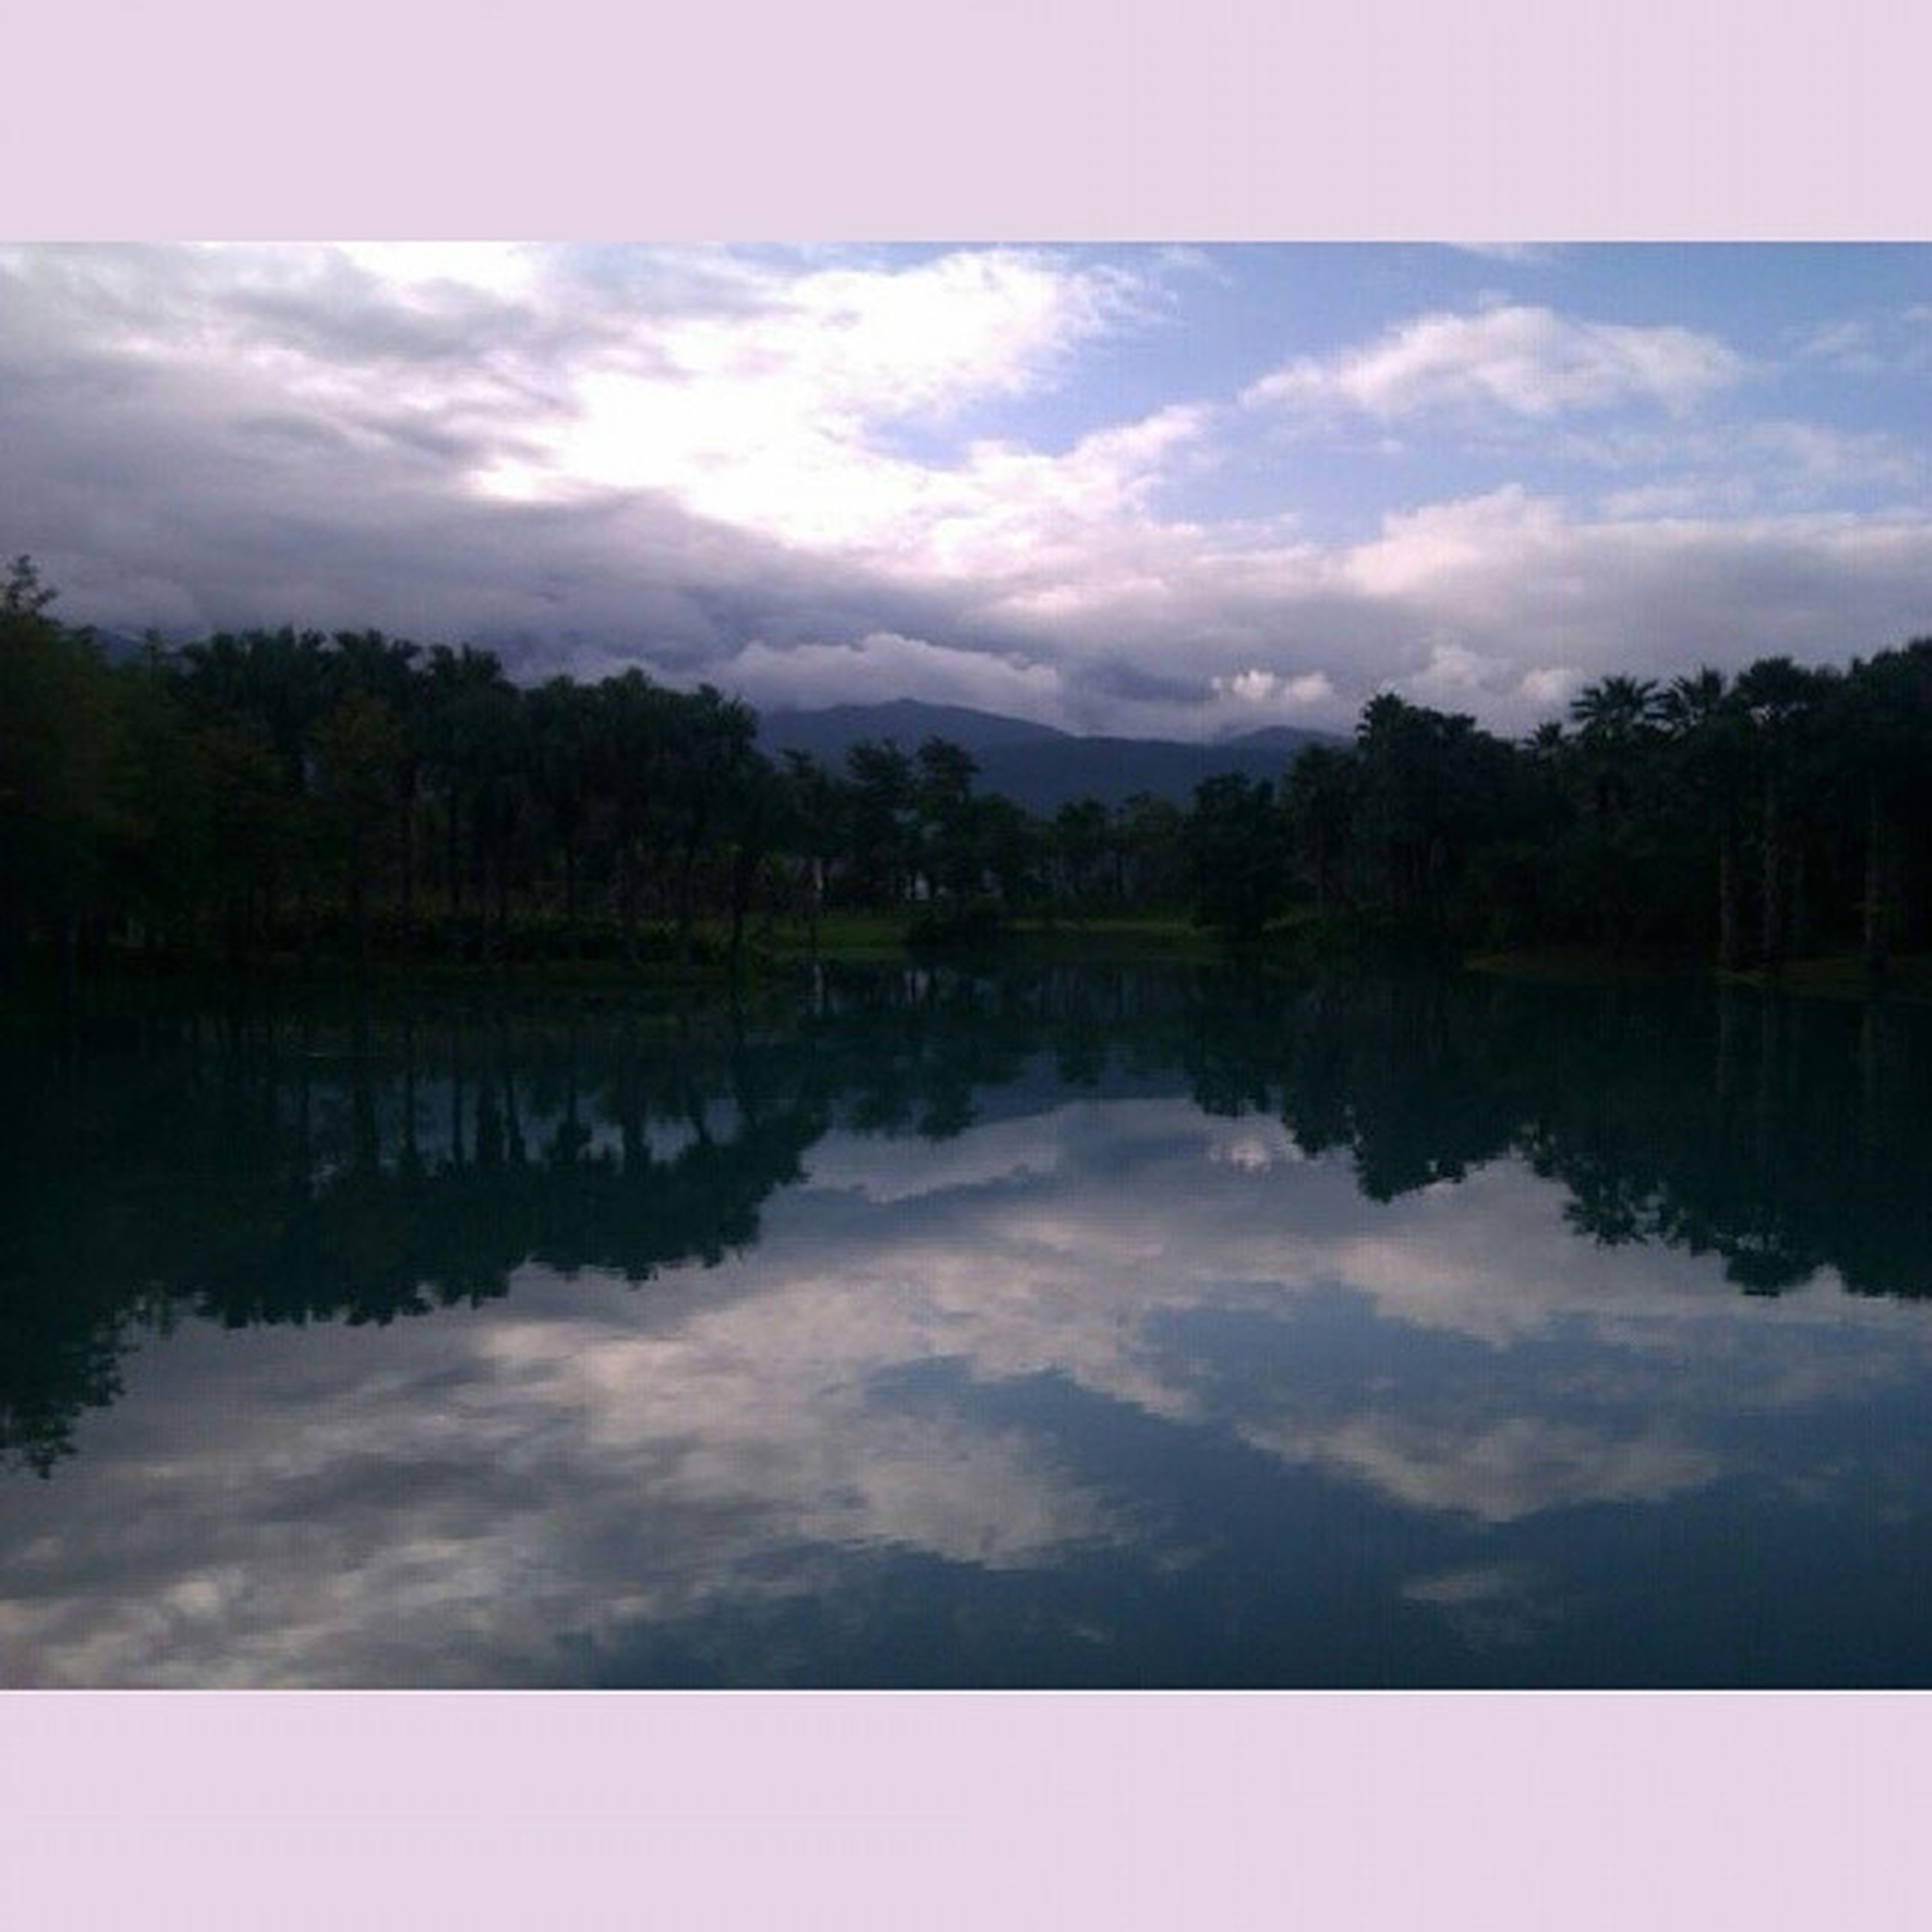 reflection, sky, lake, tranquil scene, water, tranquility, scenics, cloud - sky, tree, beauty in nature, cloud, nature, waterfront, cloudy, standing water, idyllic, calm, symmetry, outdoors, non-urban scene